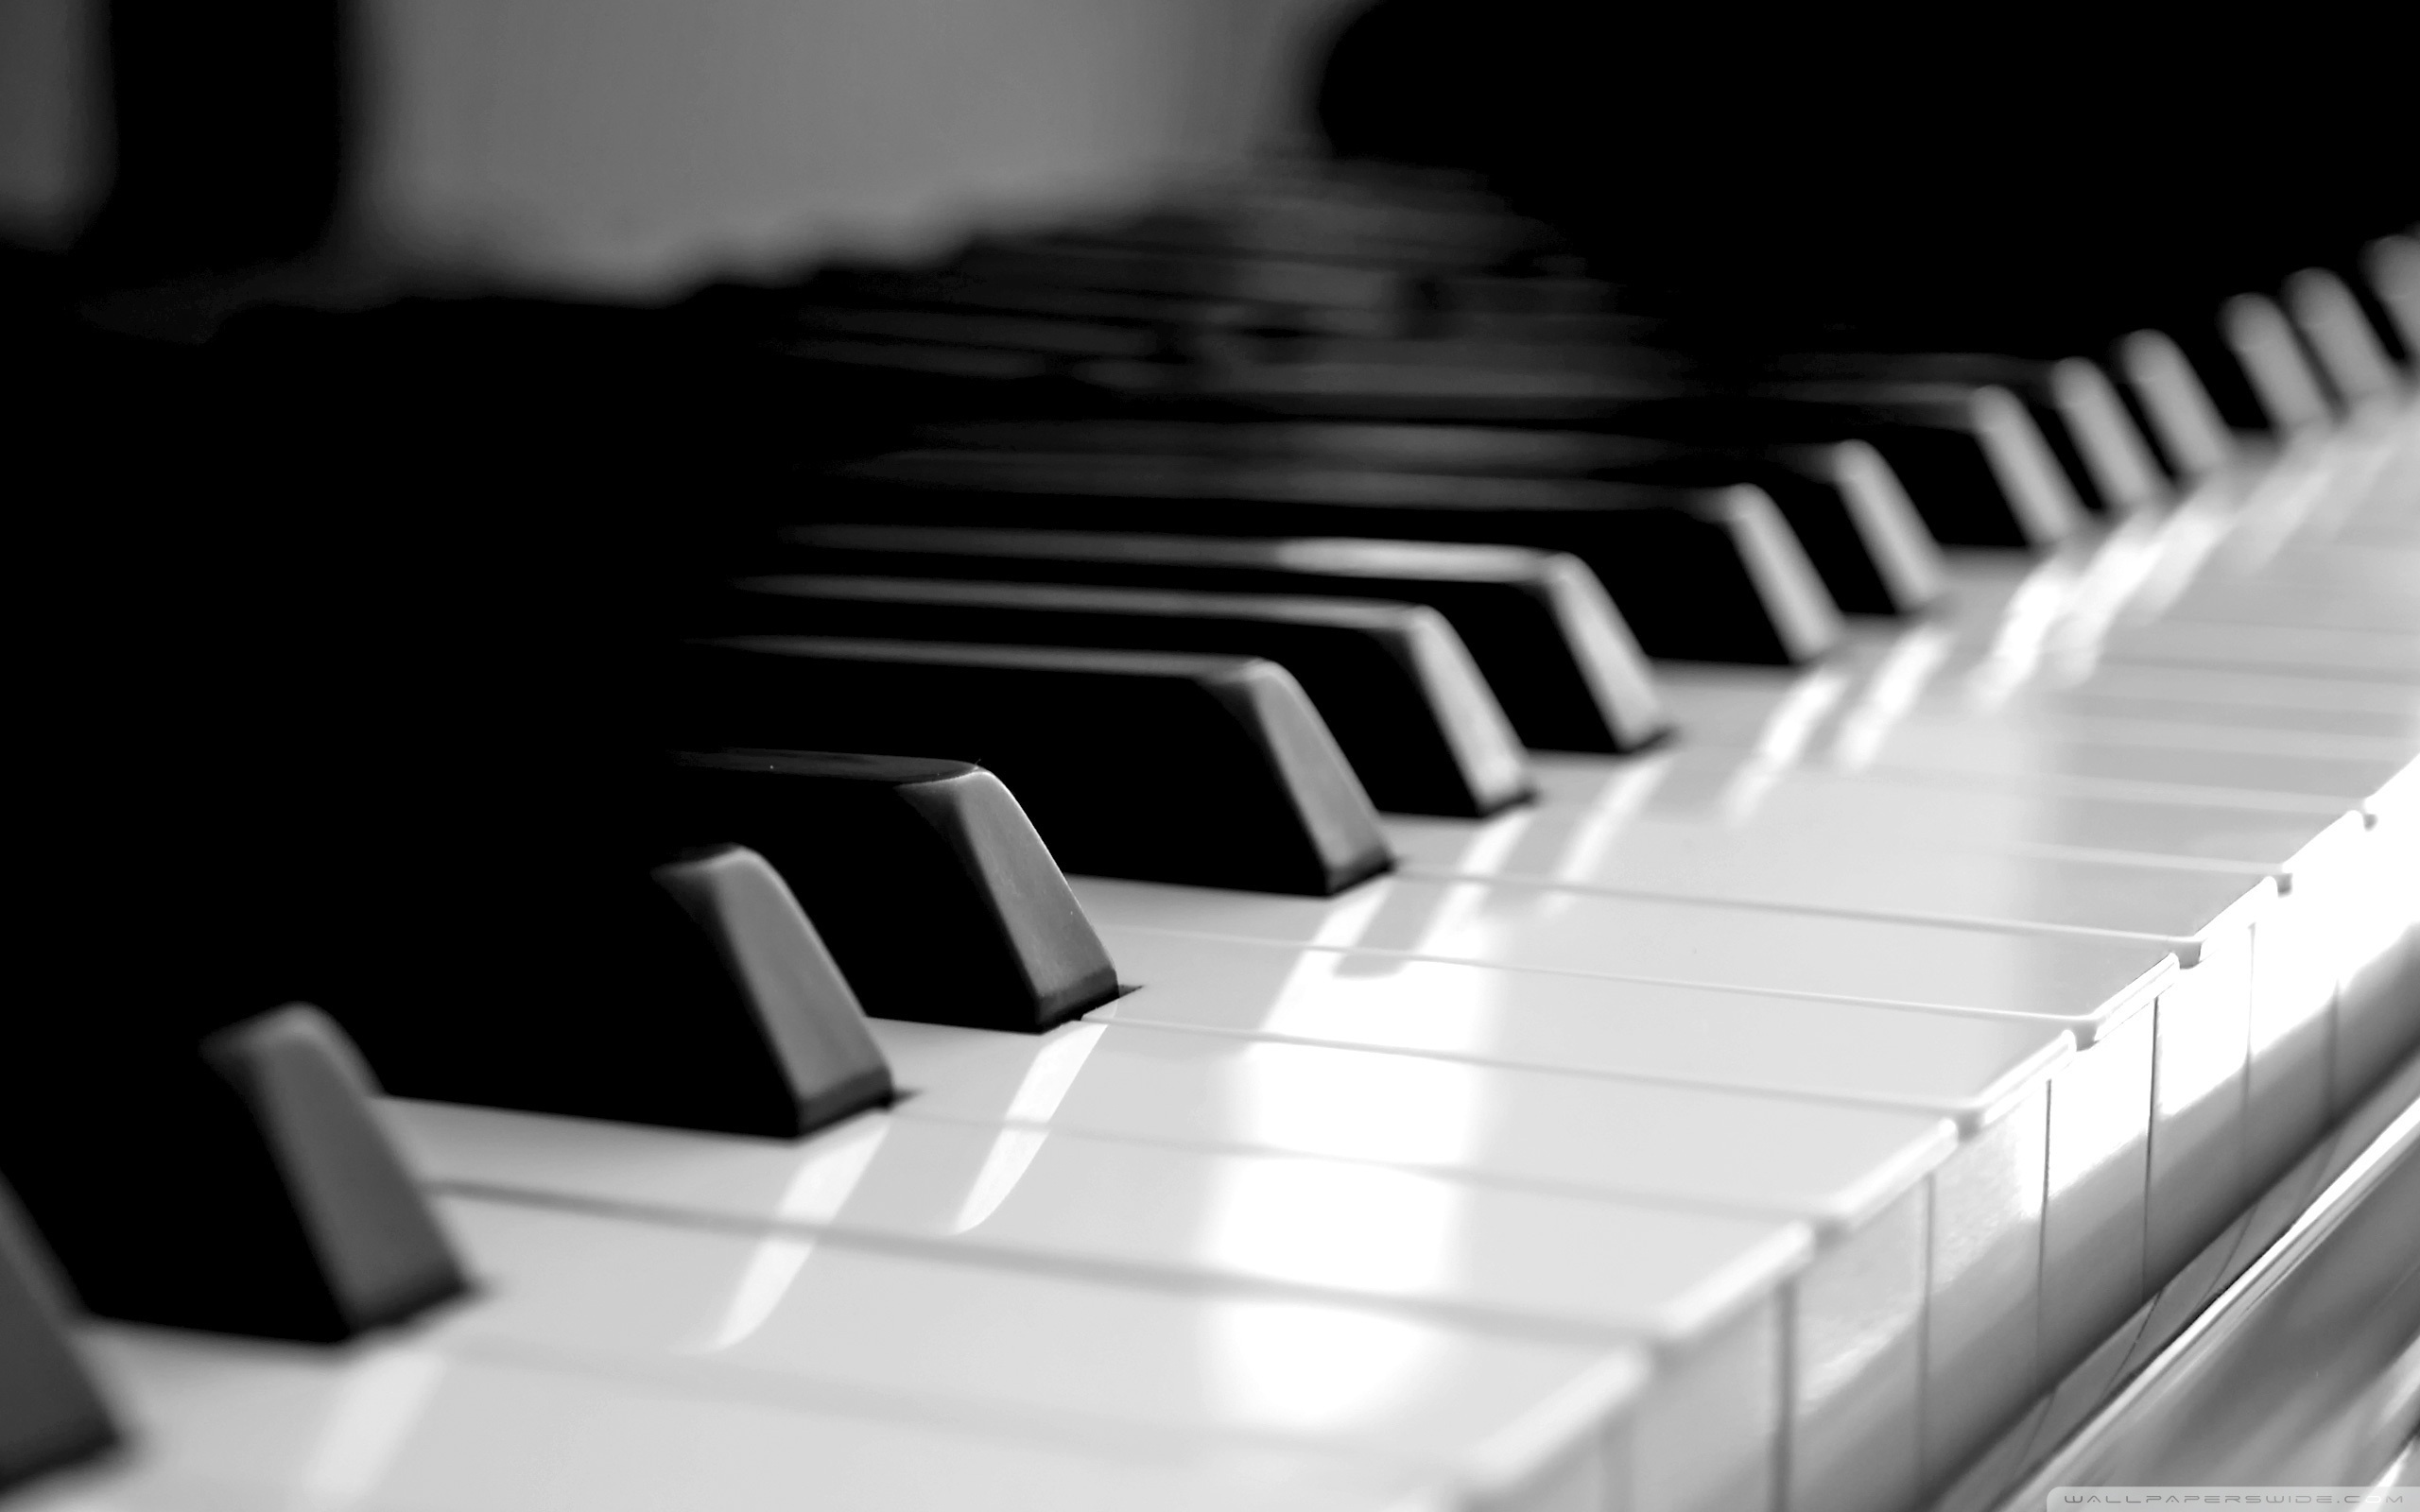 Download Free WallpaperPiano Keyboard